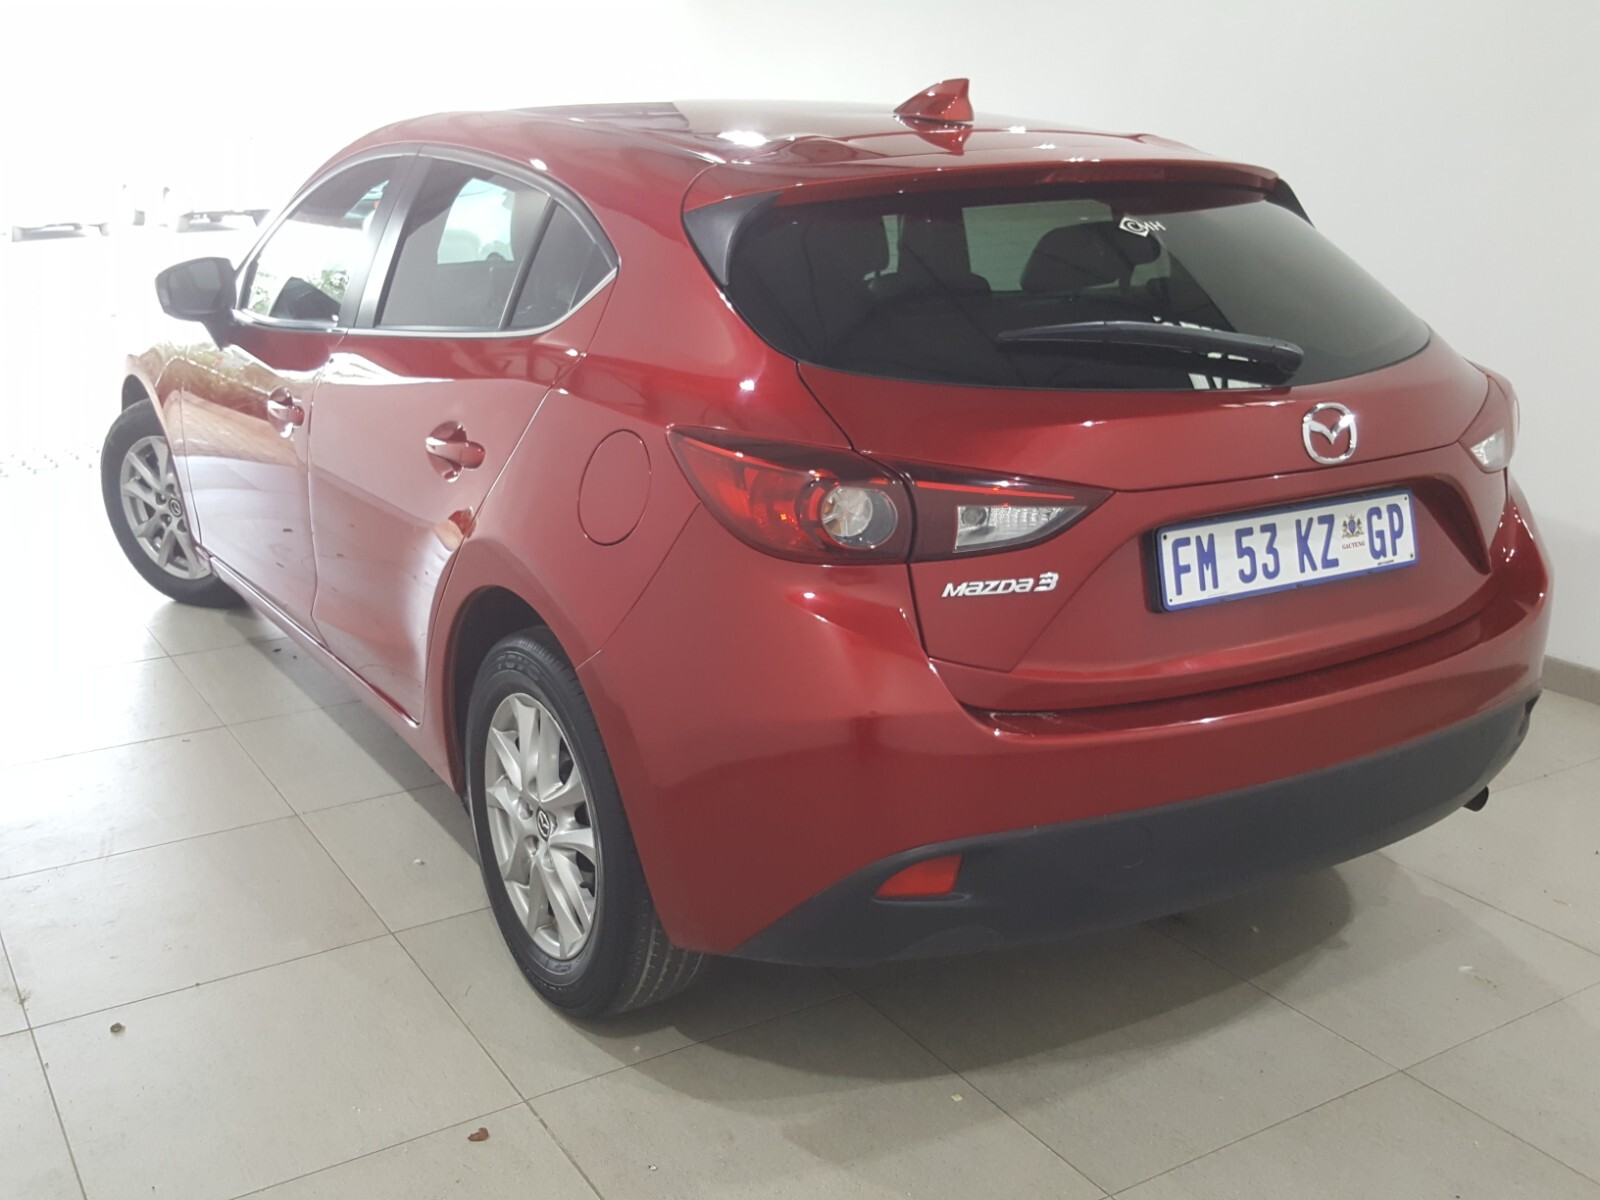 MAZDA 1.6 DYNAMIC 5DR A/T Roodepoort 5327025